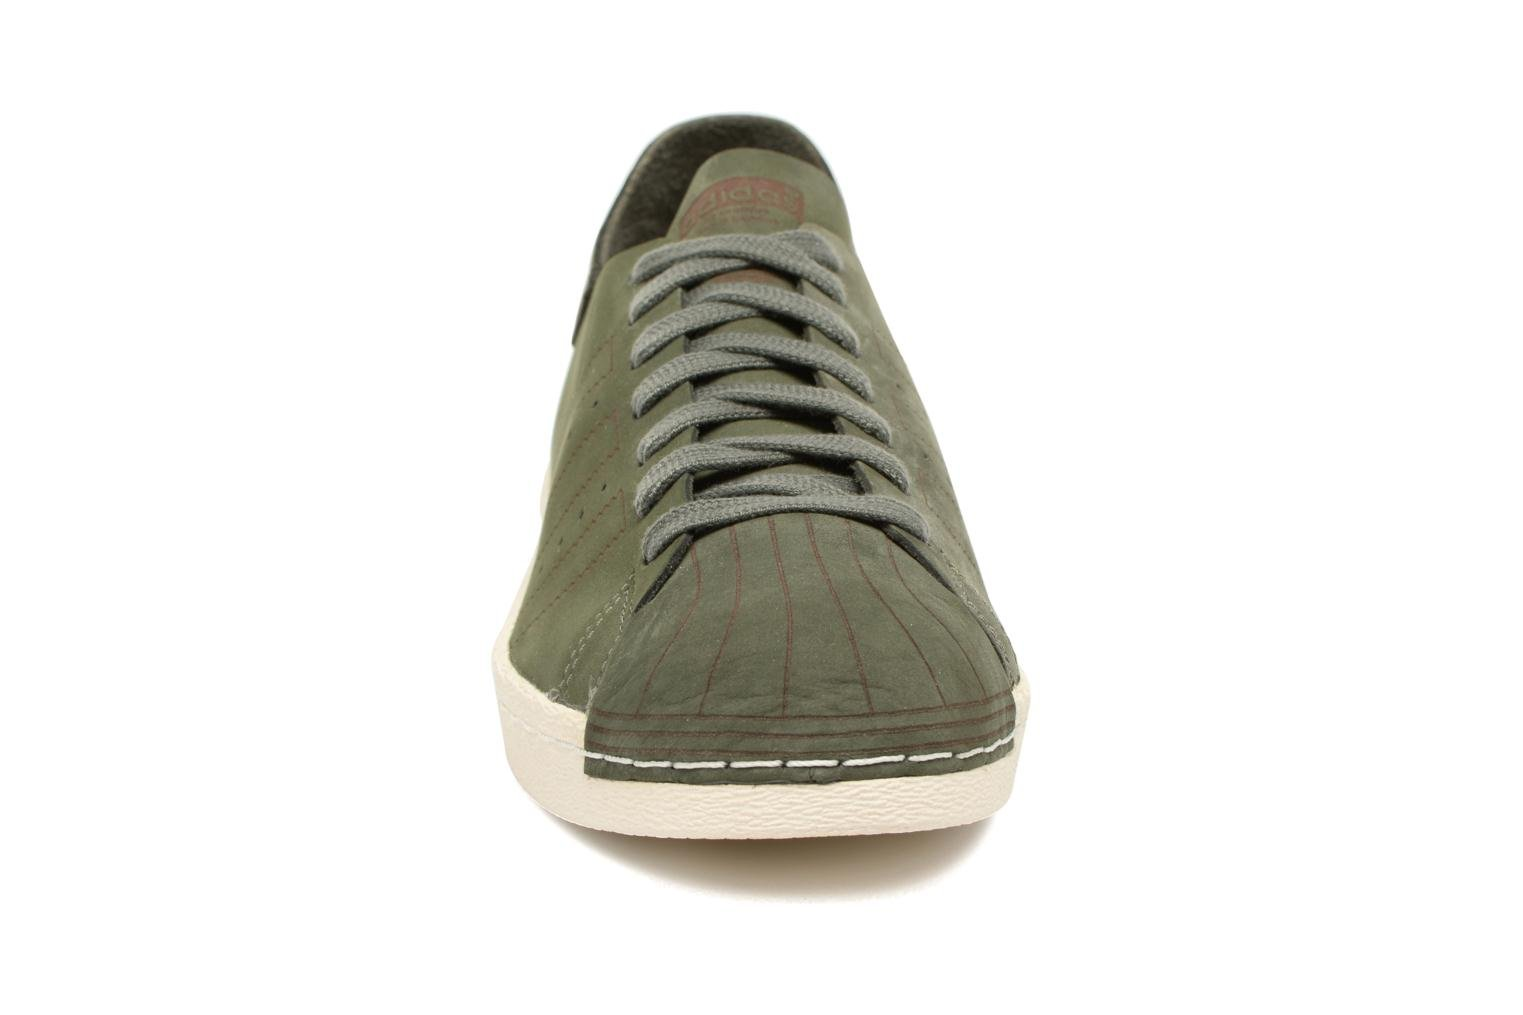 Verbas/Verbas/Rounob Adidas Originals Superstar 80S Decon (Vert)